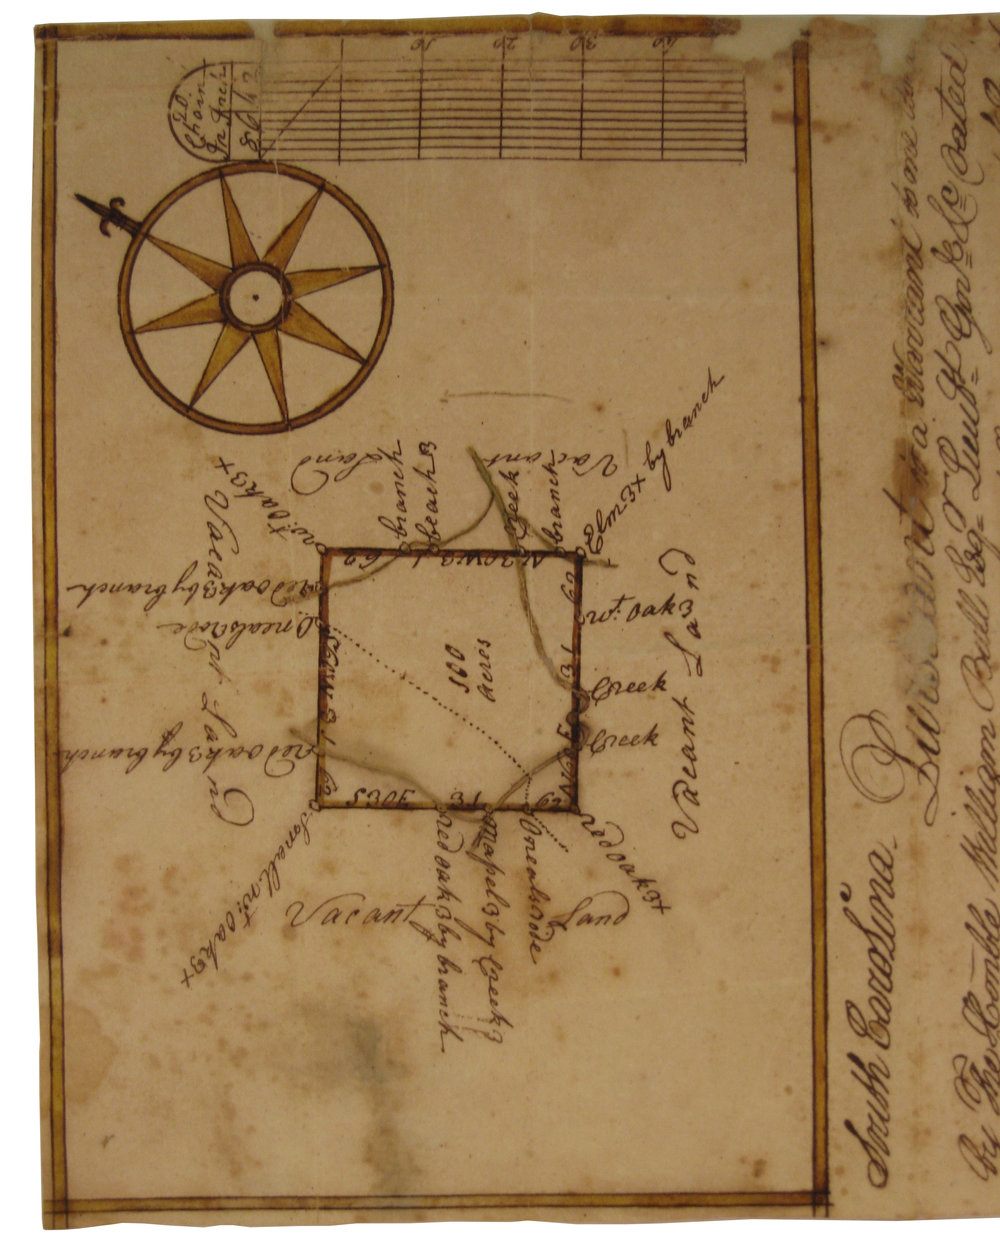 Surveying Map, 1770